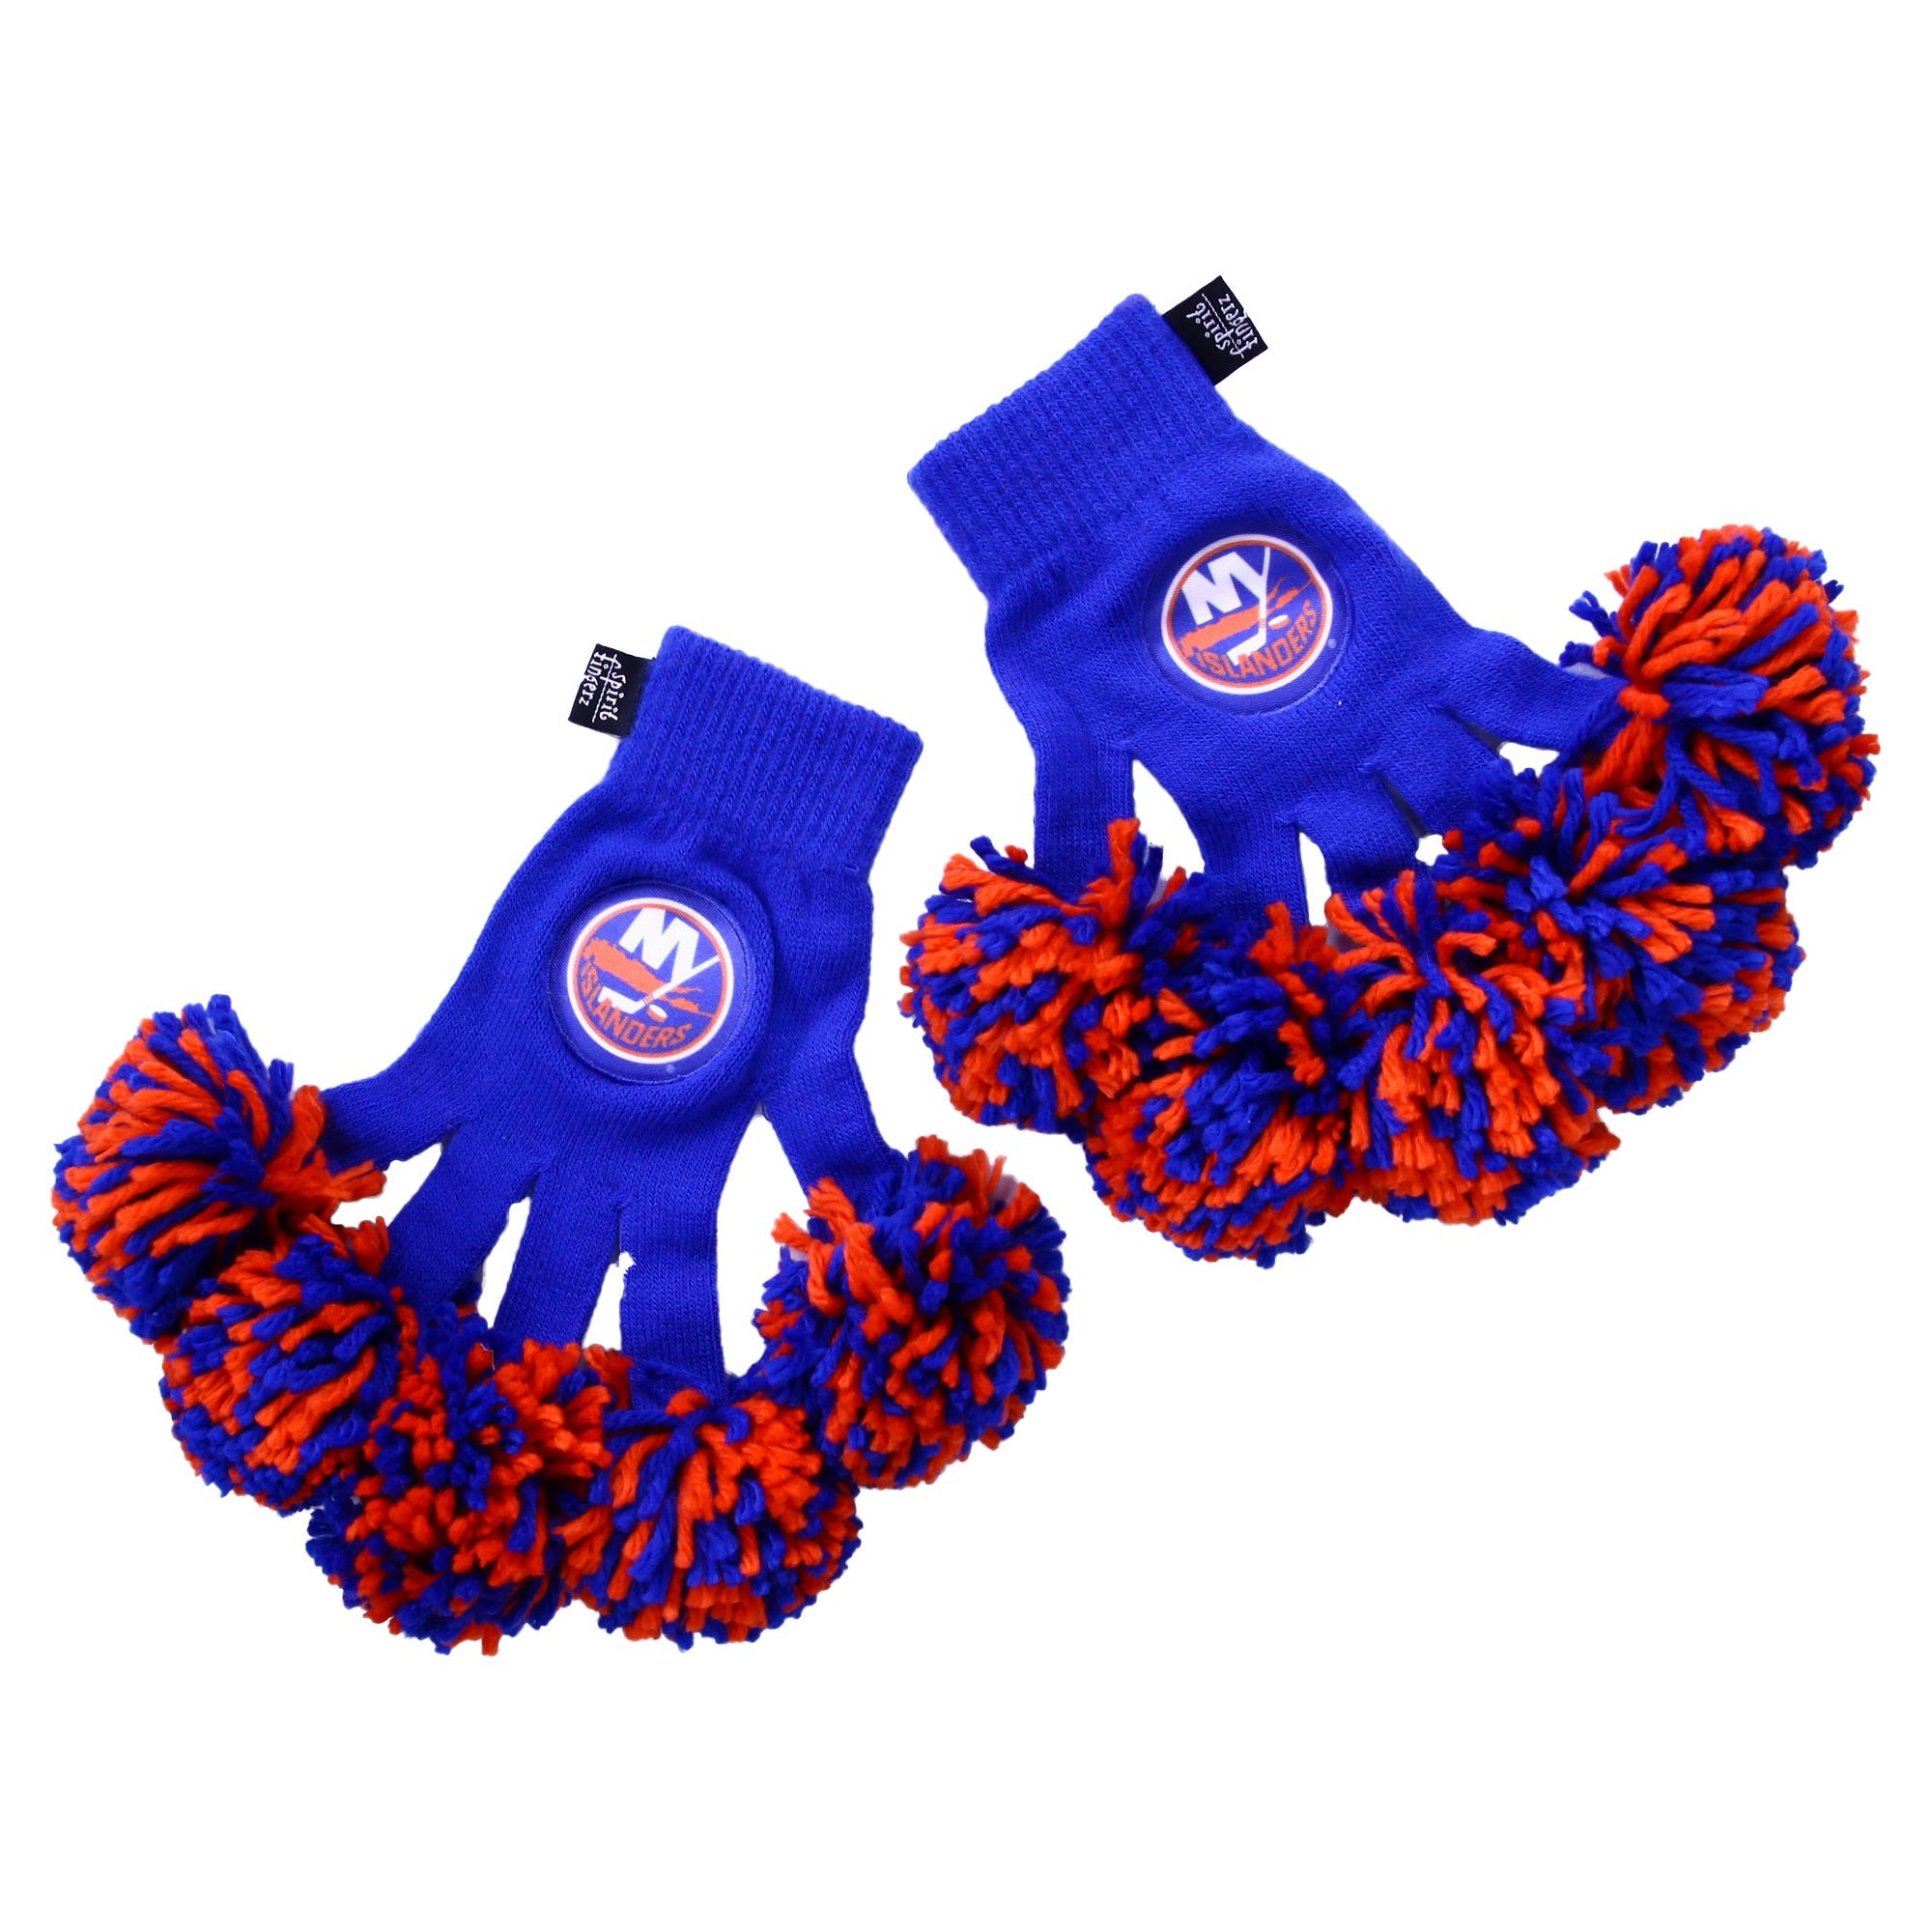 New York Islanders NHL Spirit Fingerz Cheerleading Pom-Pom Gloves